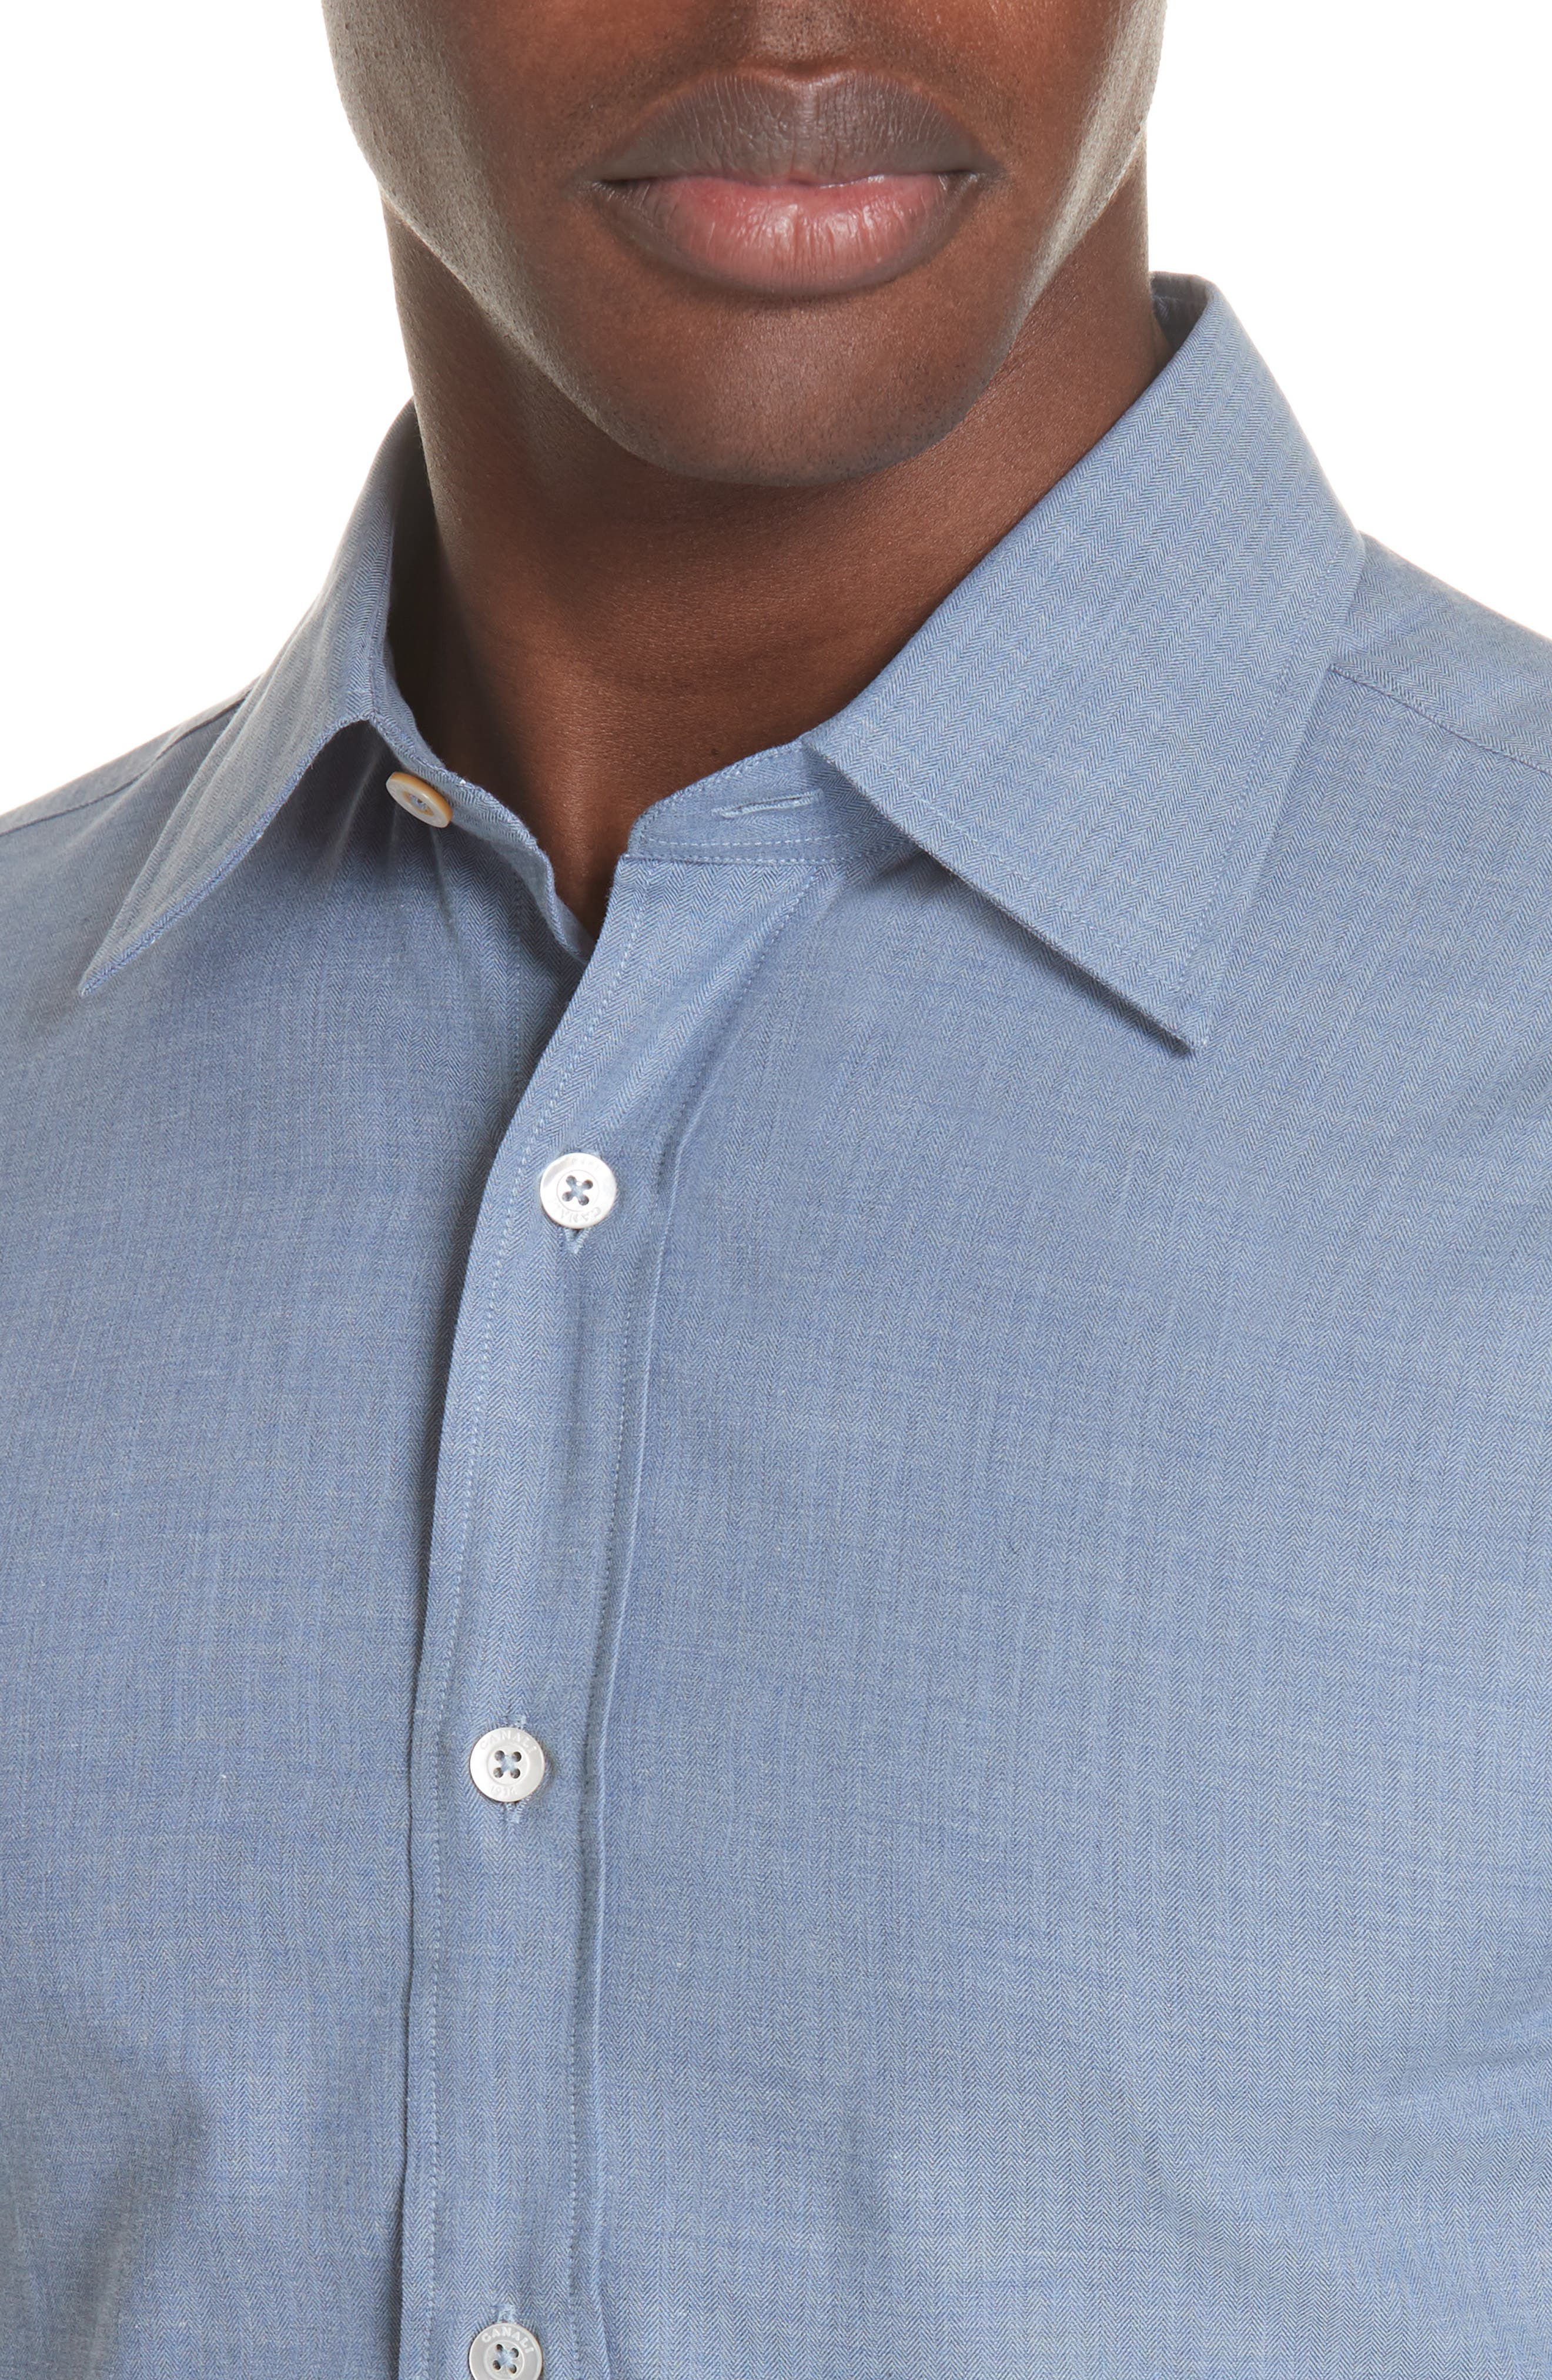 Classic Fit Herringbone Dress Shirt,                             Alternate thumbnail 2, color,                             Light Blue